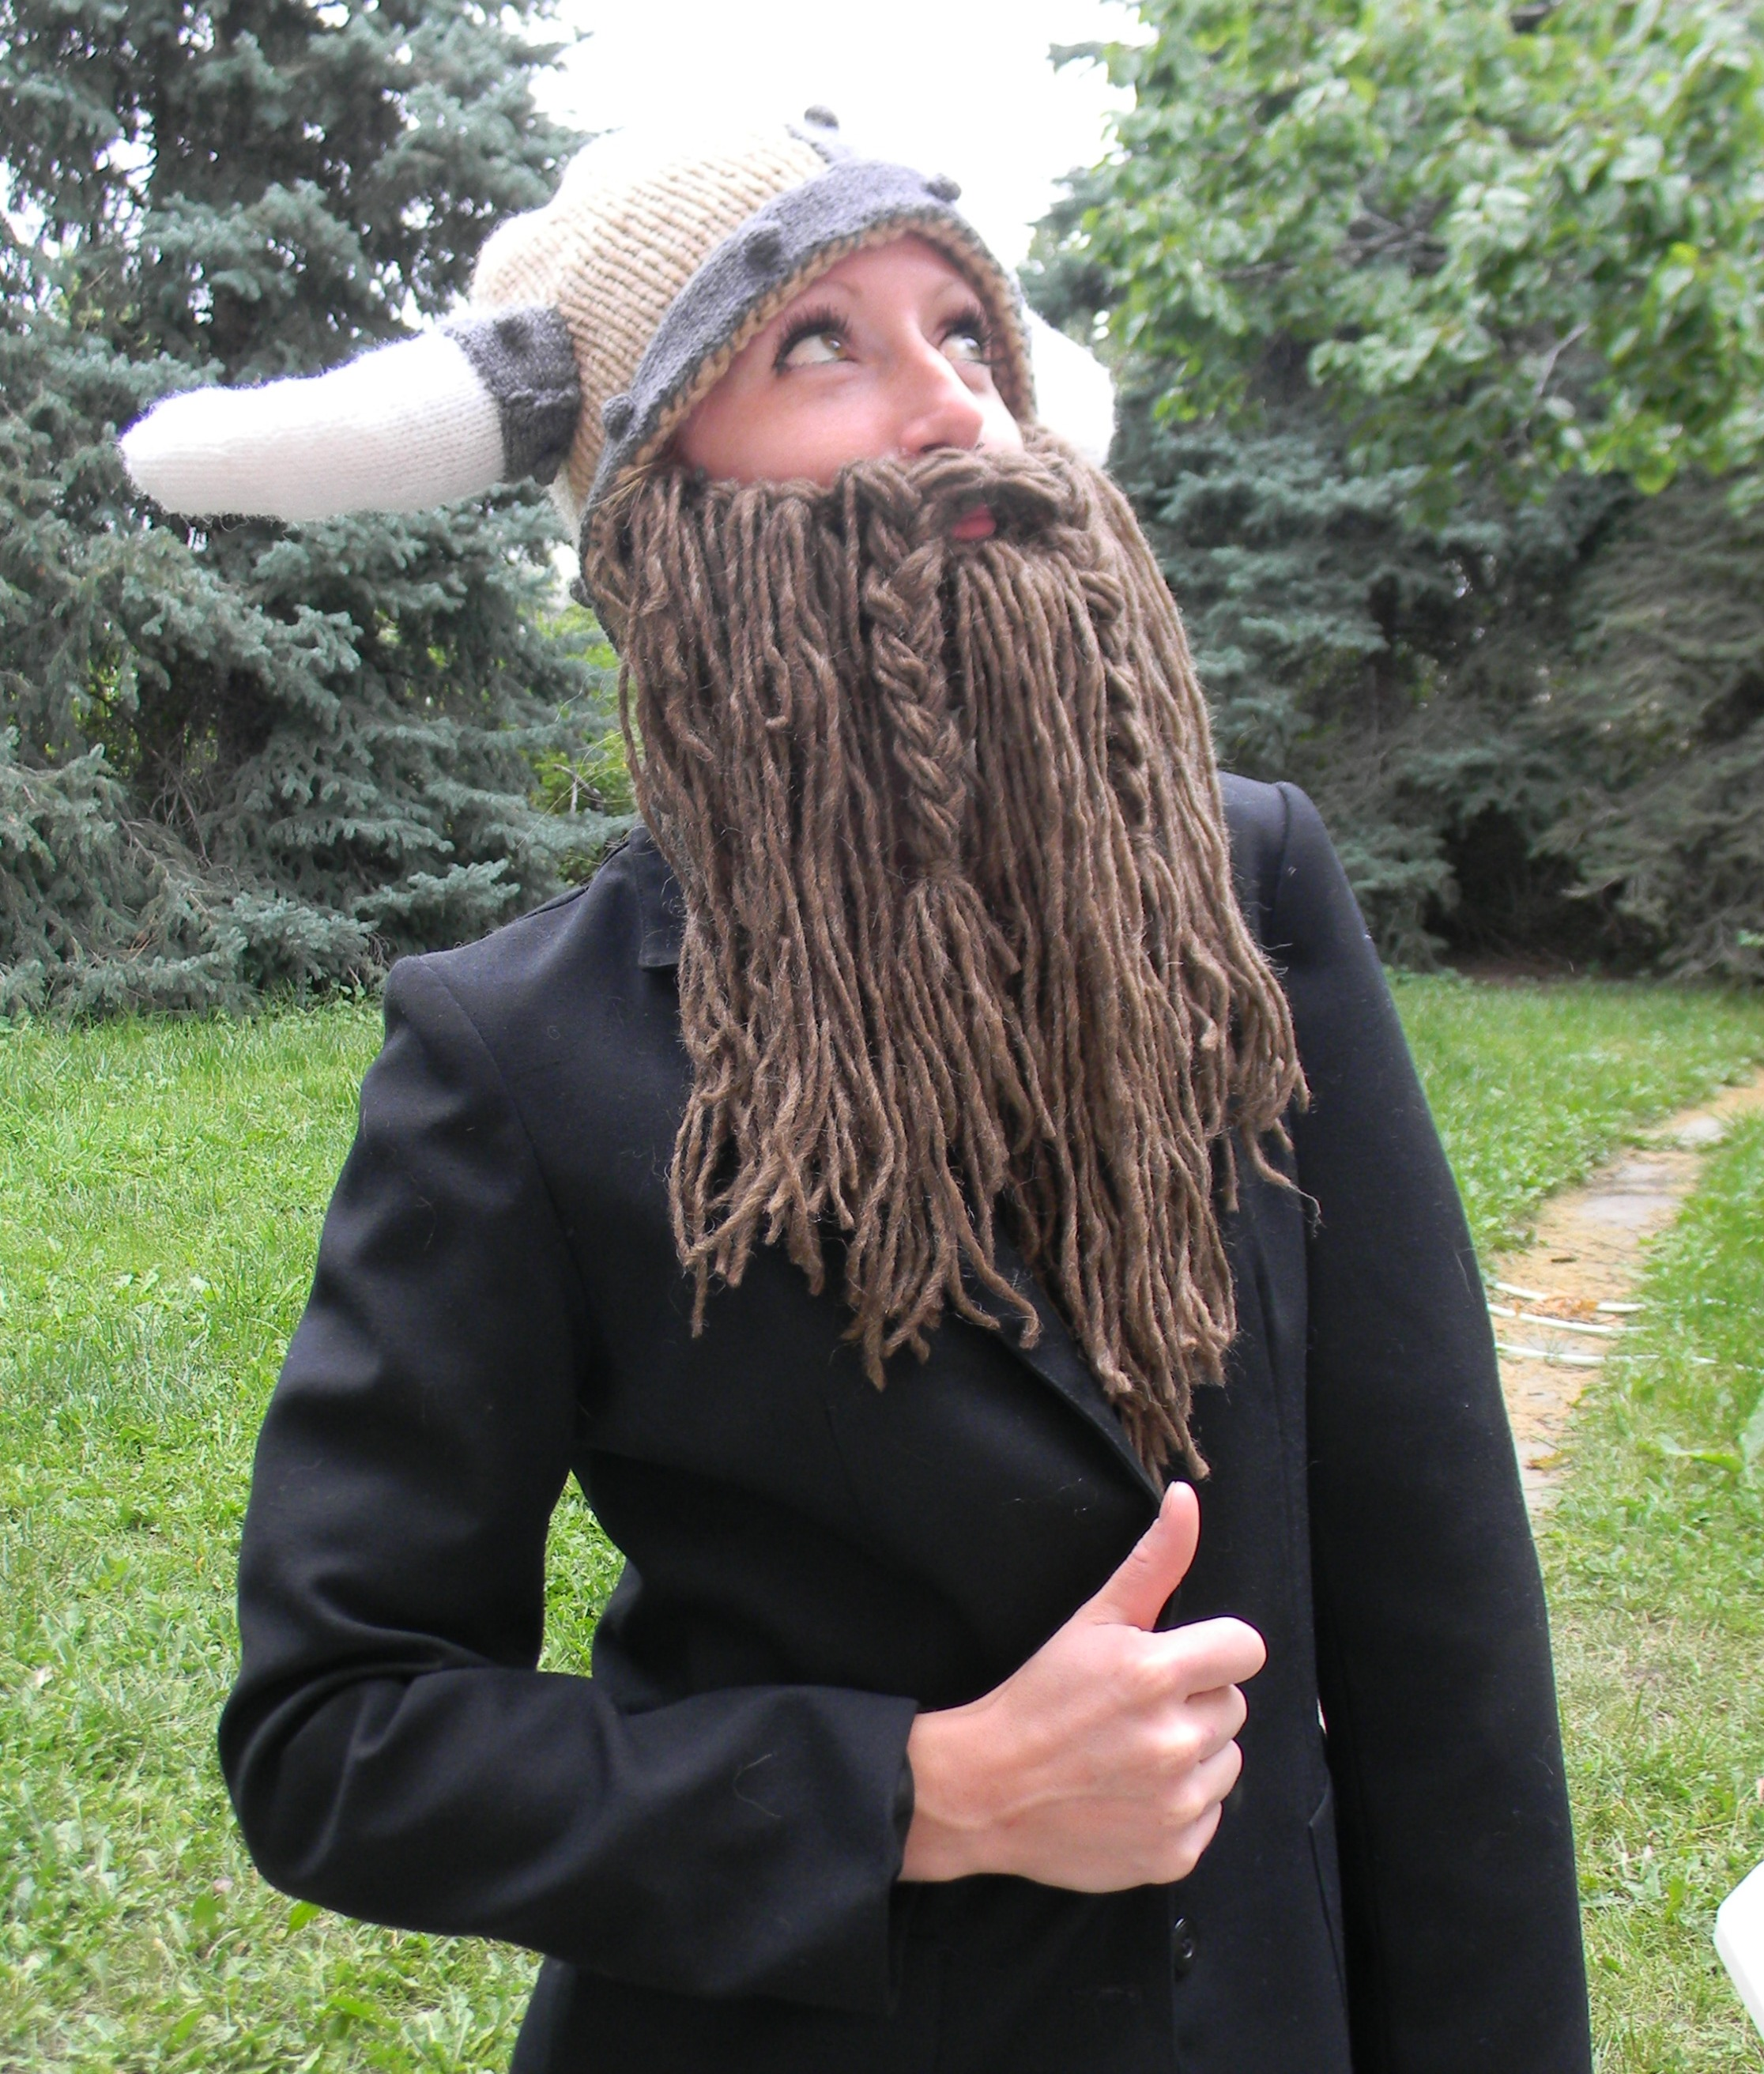 Free Knitting Patterns For Baby Toys : Beared Viking Helmet Pattern   Released! SillyLittleLadys Space